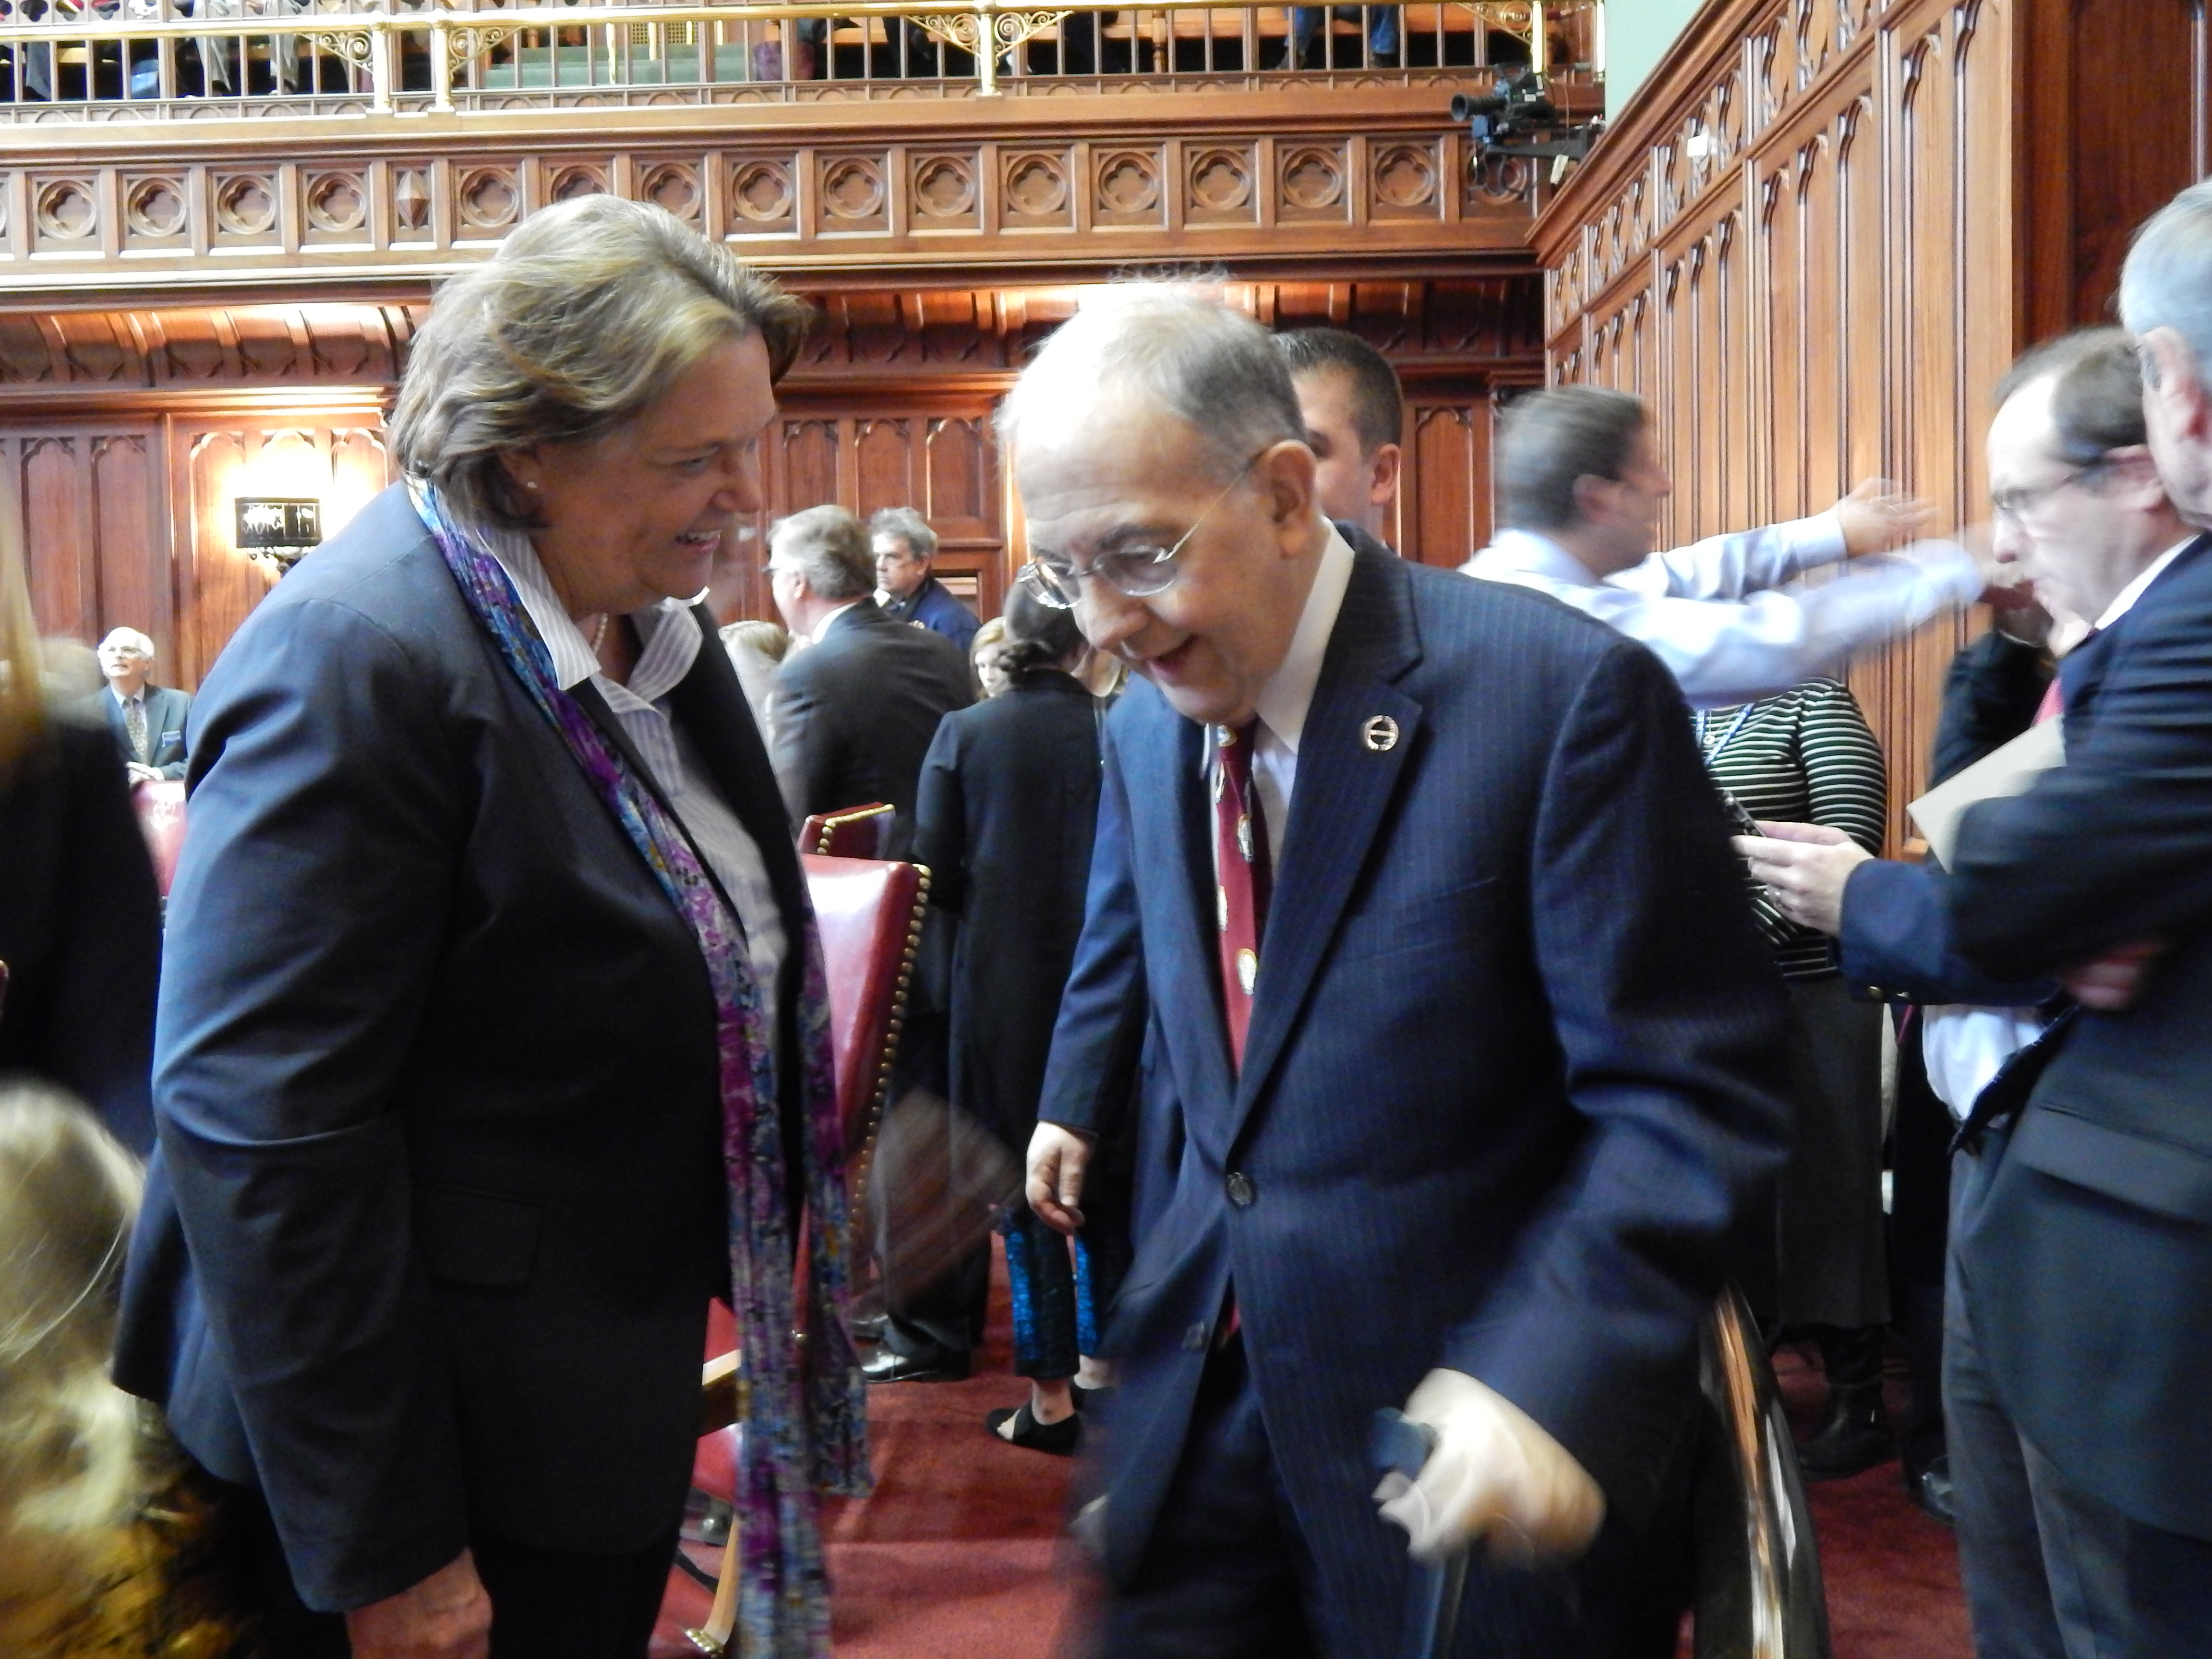 Senators face a tough session but open with collegiality